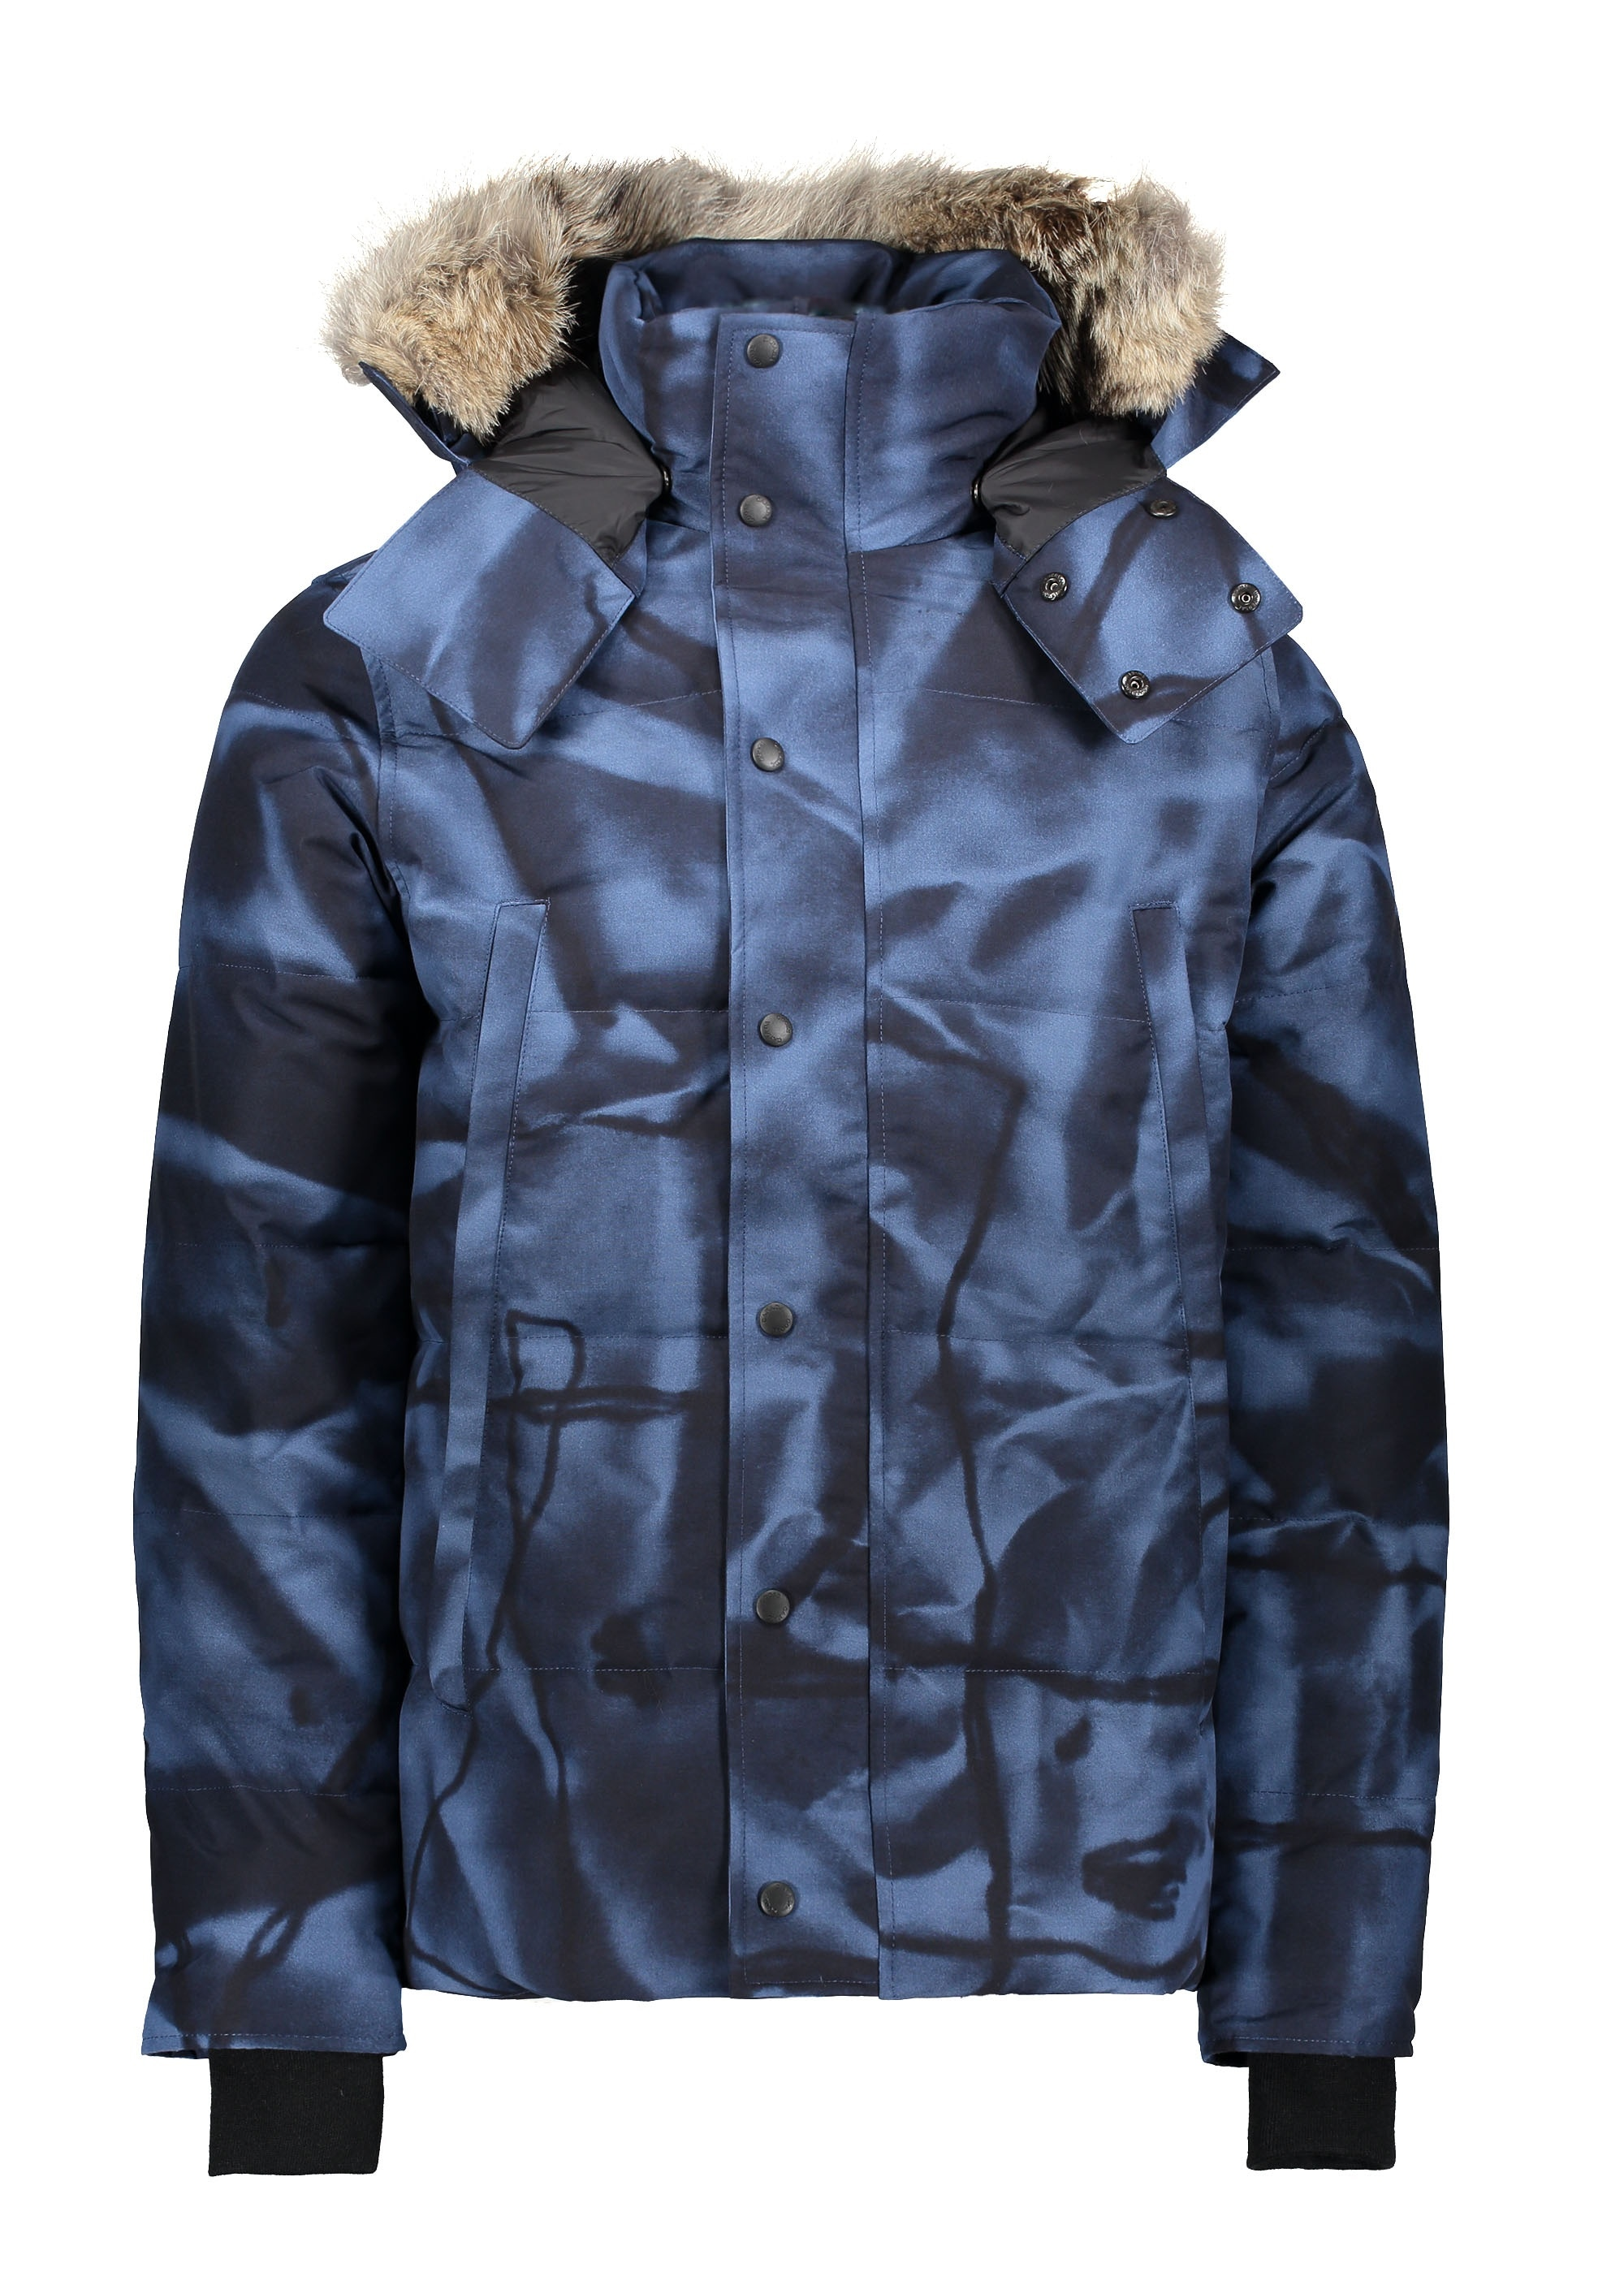 7395cd3f00a67 Canada Goose Wyndham Parka - Blue Abstract Camo - Triads Mens from ...